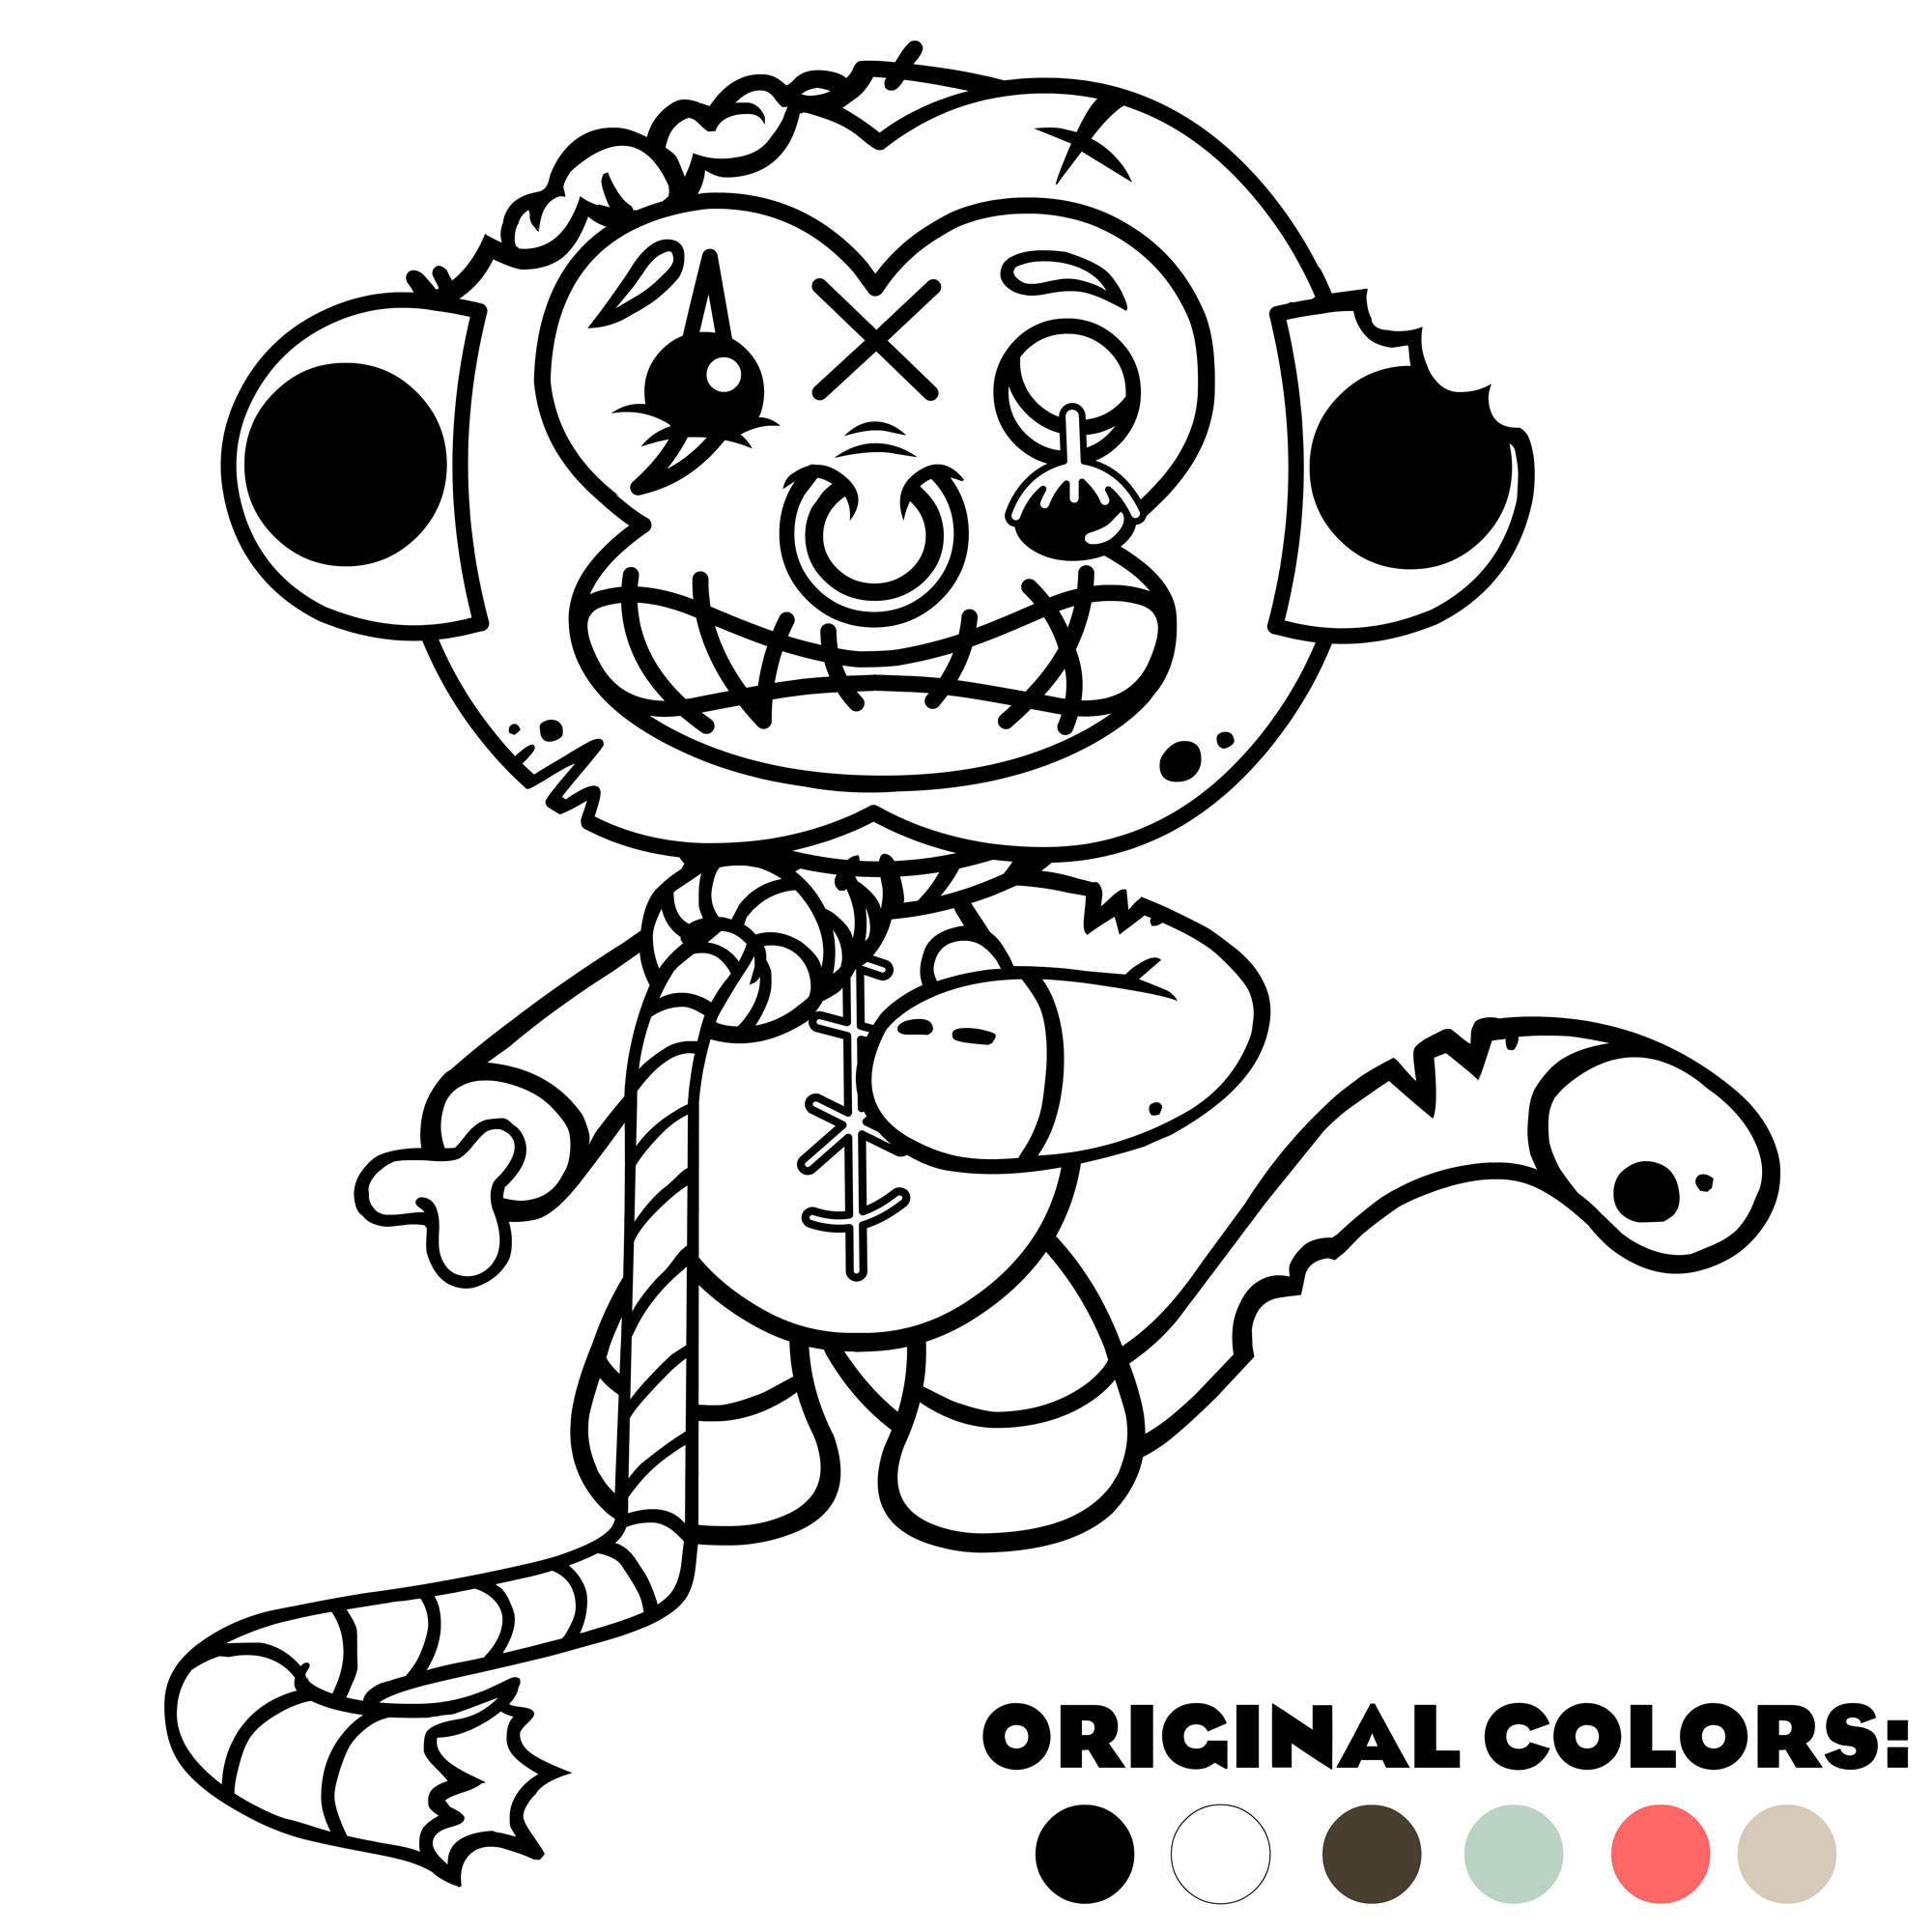 Coloring-Book---Zombie-Monkey.jpg